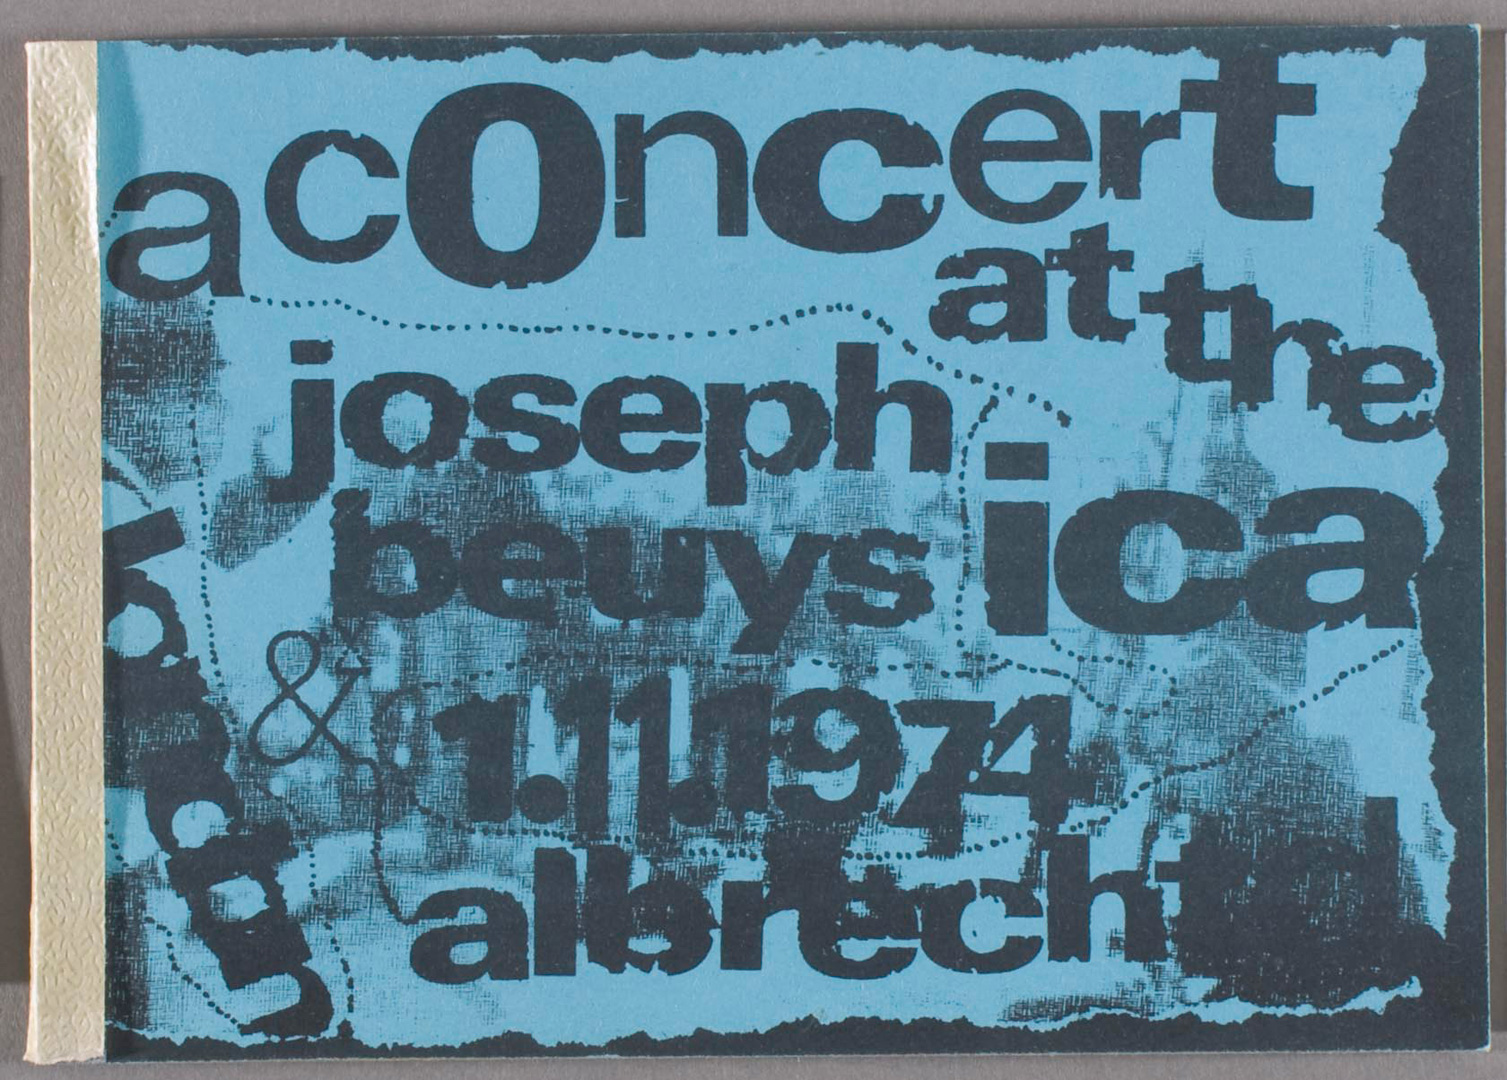 Joseph Beuys - A Concert at the ICA, 1975, long-playing record by Albrecht D. and Joseph Beuys; silkscreen sleeve and supplementary booklet